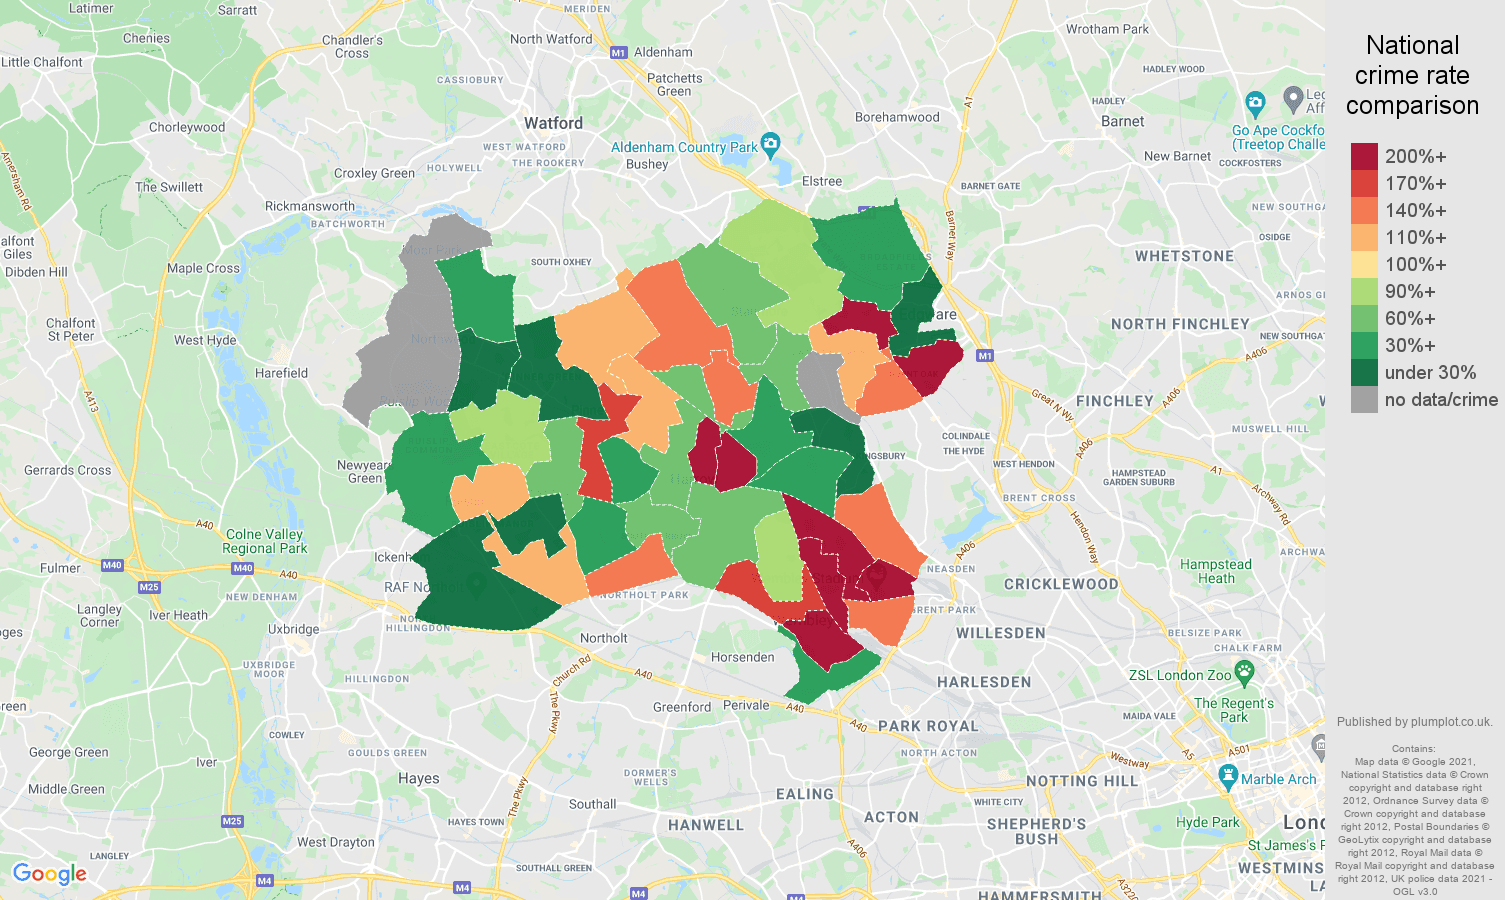 Harrow theft from the person crime rate comparison map